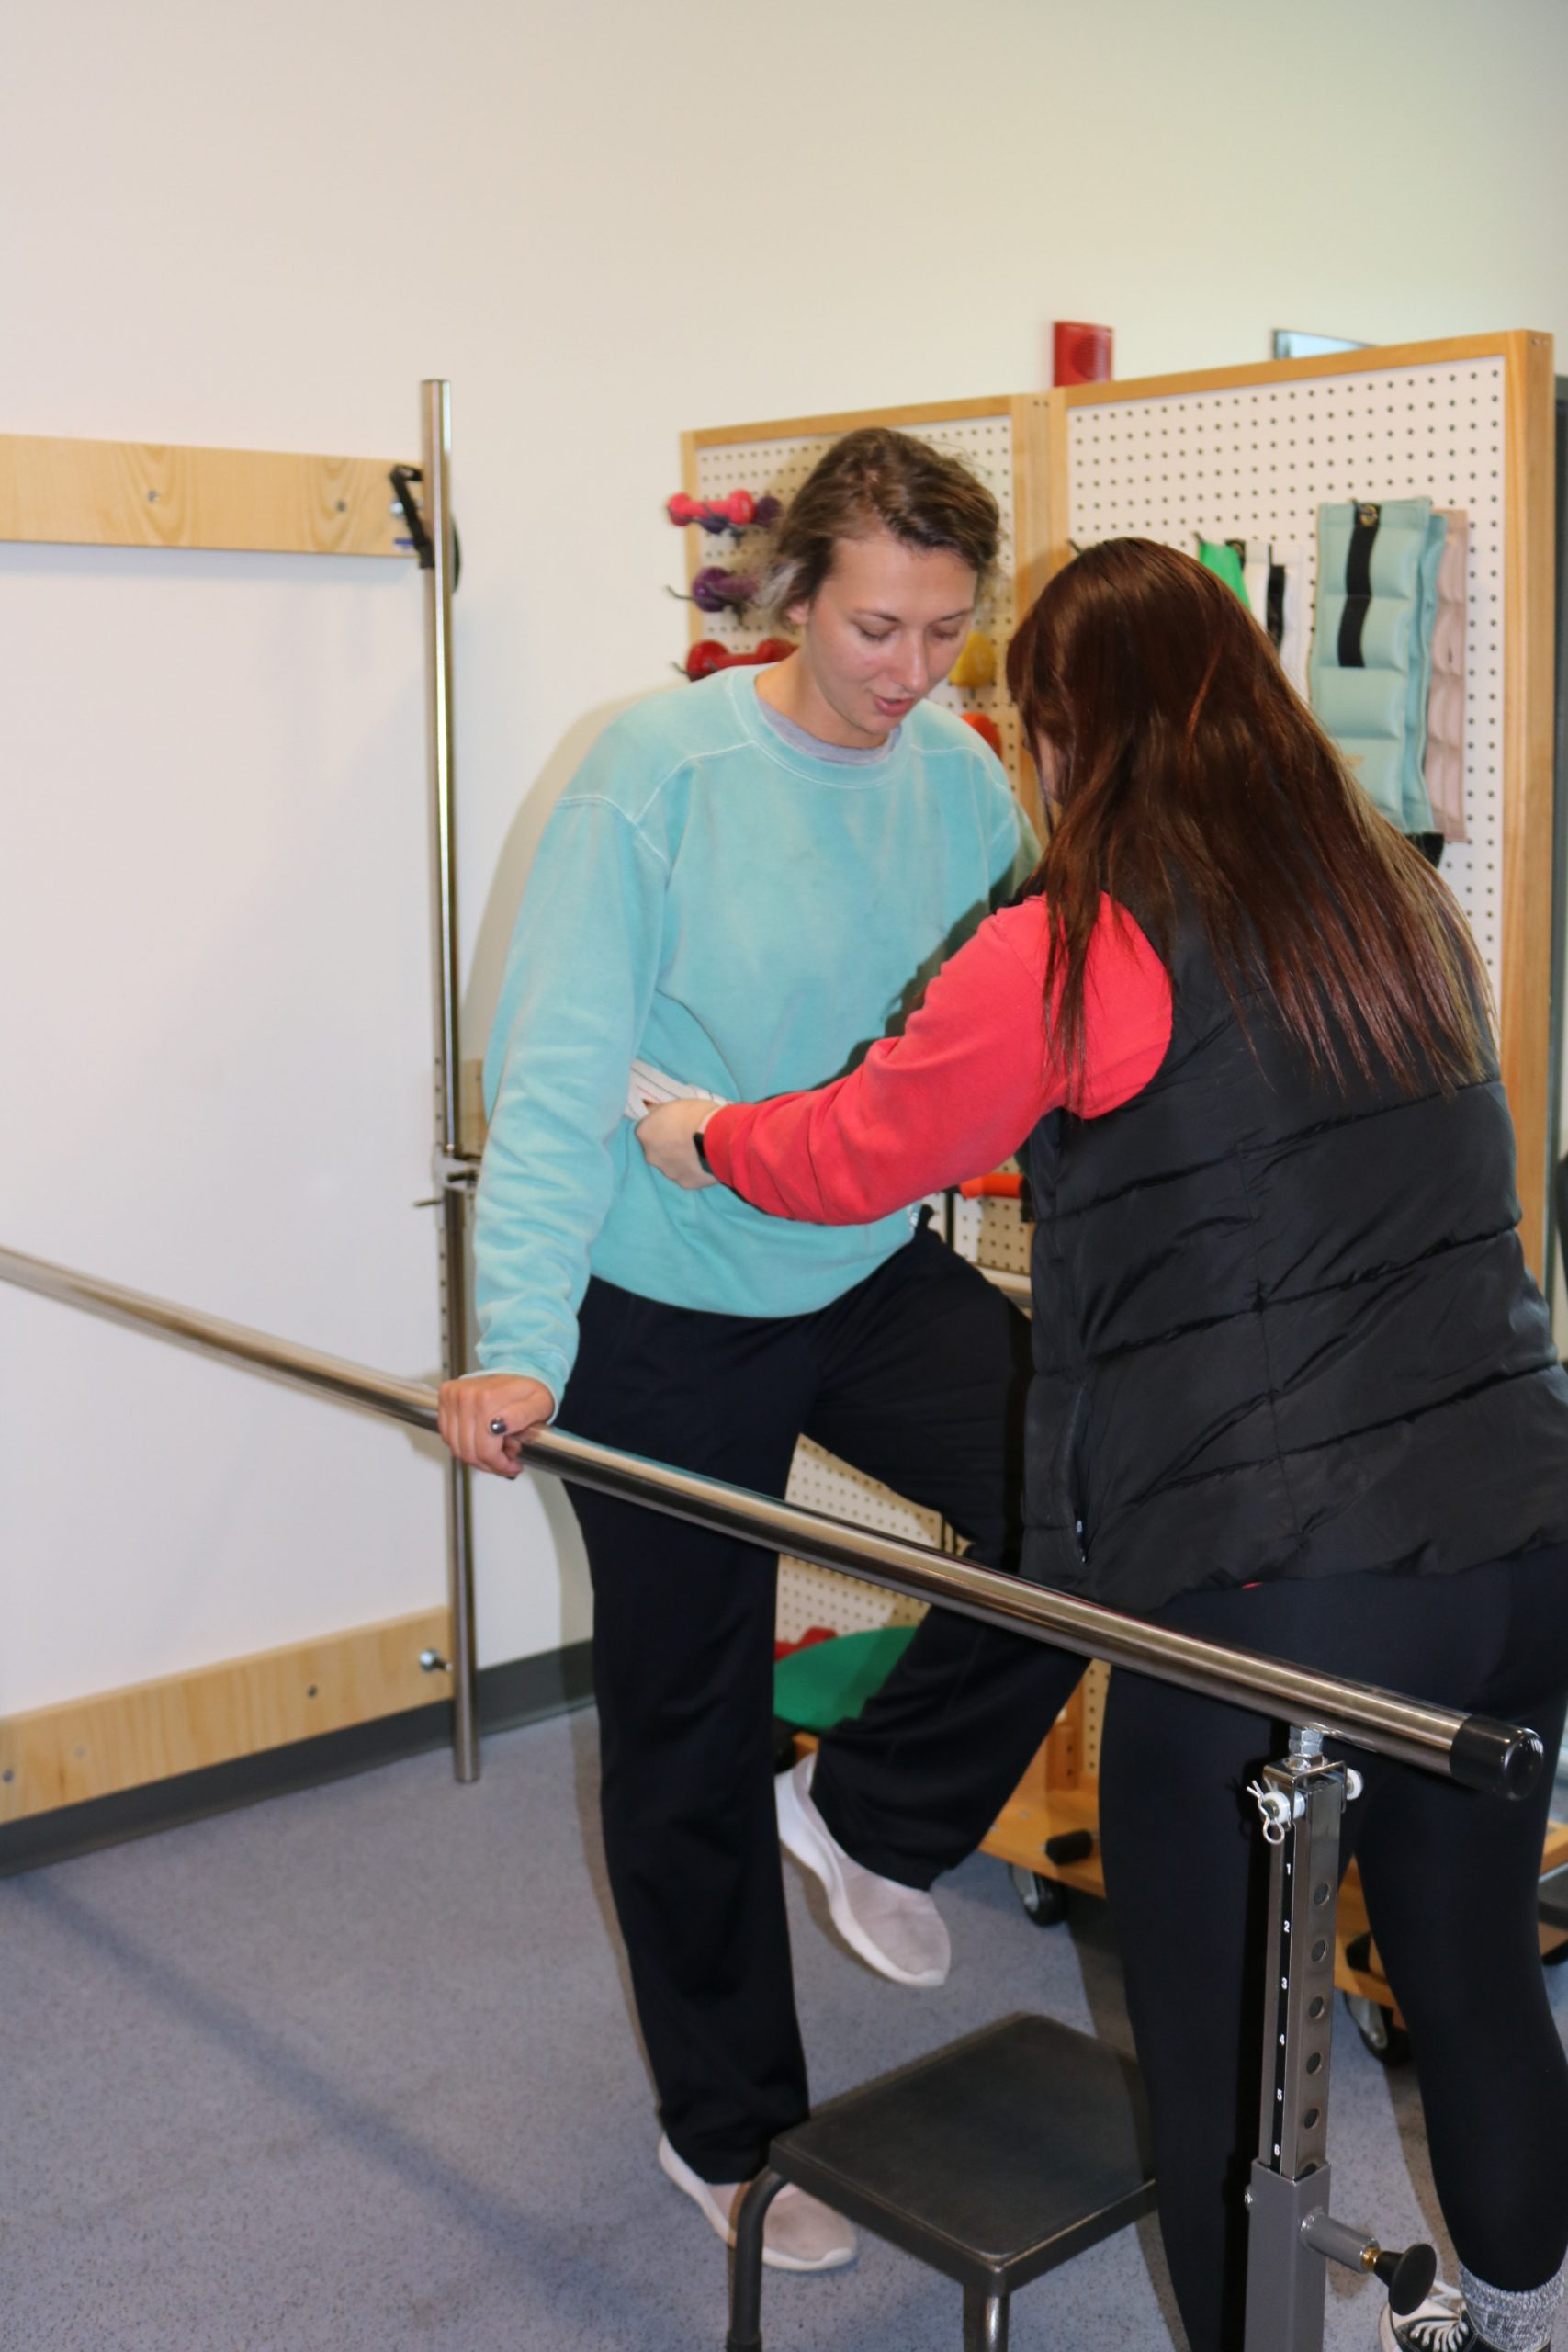 Physical Therapist Assisting: Helping Patients Get on Their Feet